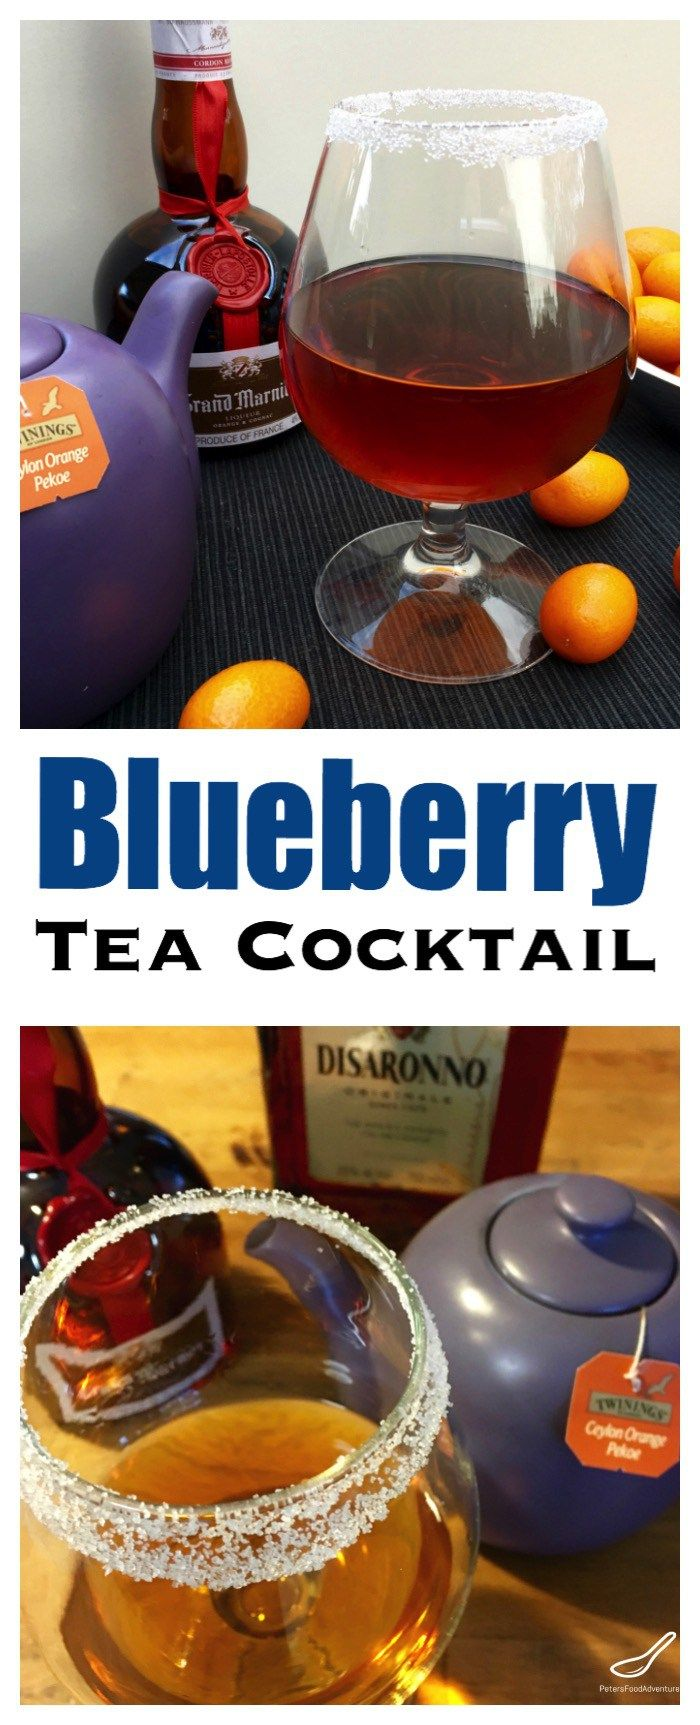 Grand Marnier, Amaretto and Orange Pekoe tea tastes fruity, with a hint of blueberries. This hot tea cocktail is a variant of a hot toddy.